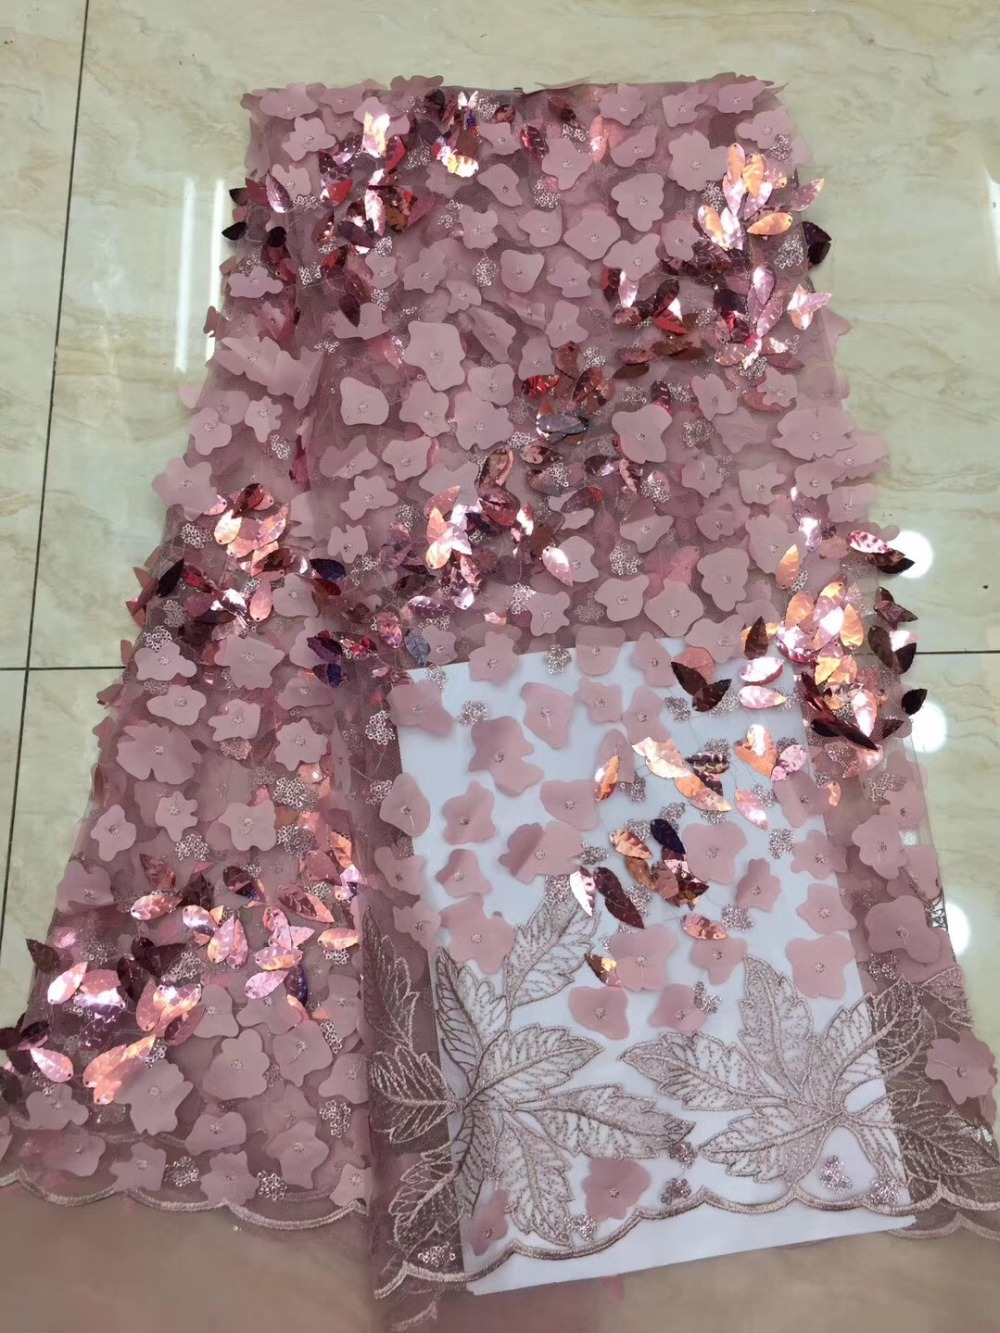 Unique New African Lace Fabric 2019 High Quality Nigerian French Guipure Cord Lace fabric With Sequins For Women DressUnique New African Lace Fabric 2019 High Quality Nigerian French Guipure Cord Lace fabric With Sequins For Women Dress